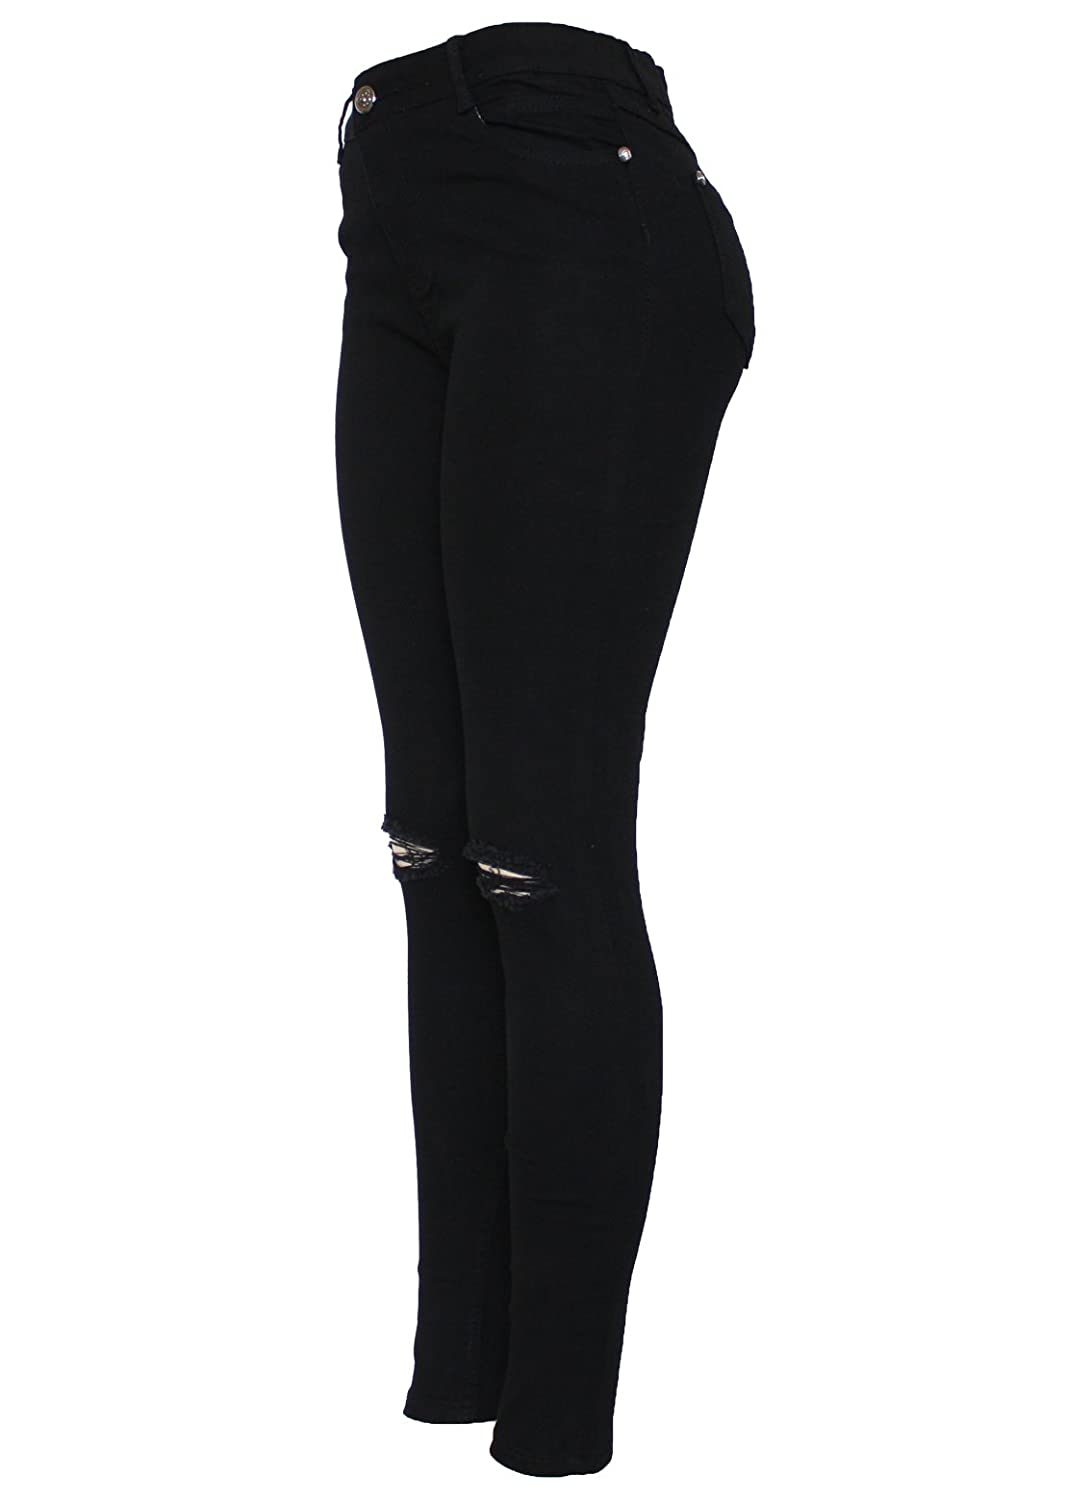 New Ladies Skinny High Waisted Knee Ripped Cut Out Stretch Denim Black Jean  Size 8-16 (8): Amazon.co.uk: Clothing